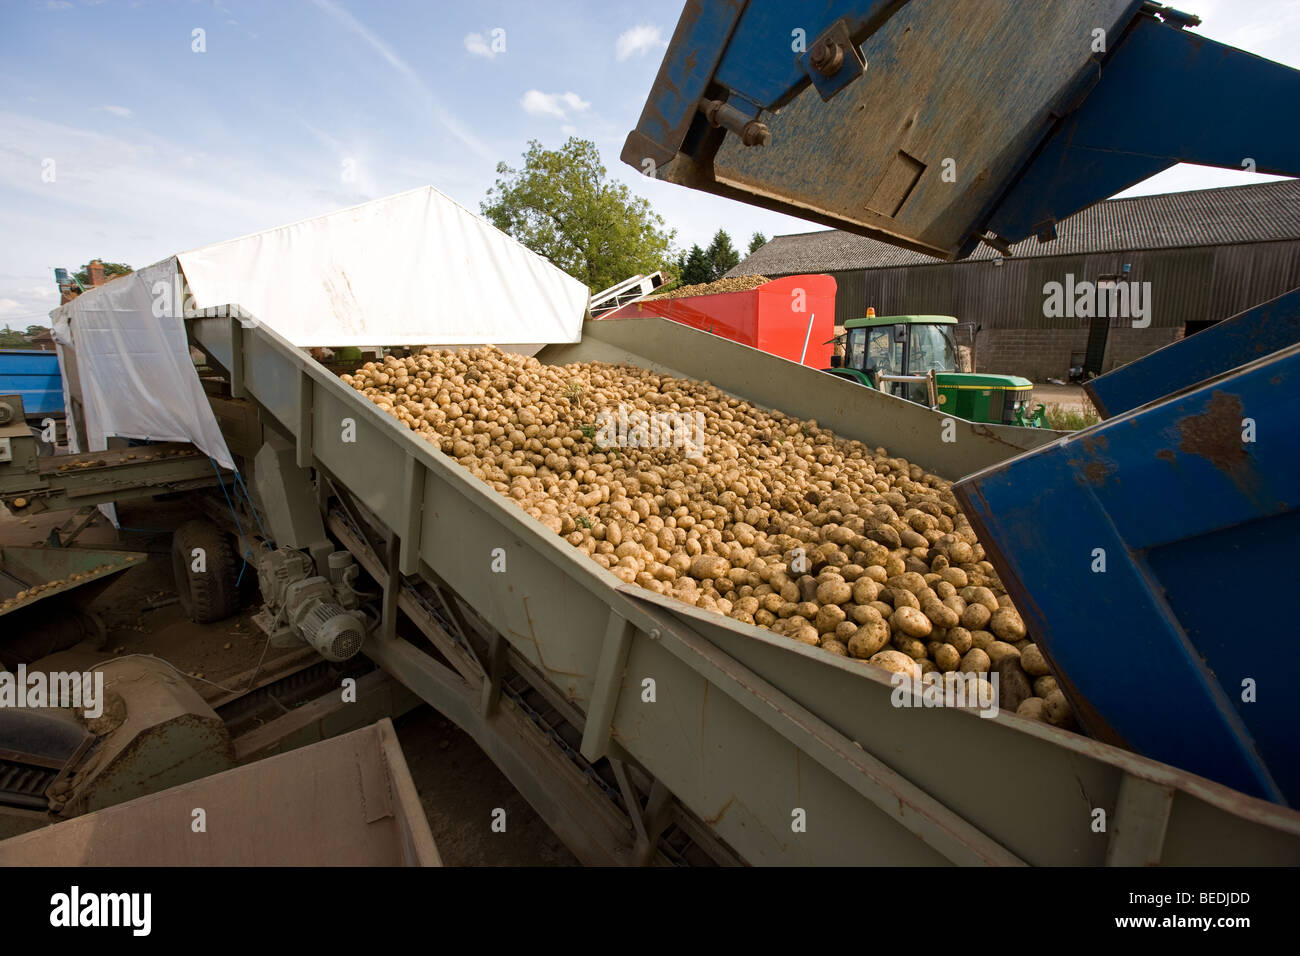 Grading Potatoes In Lincolnshire - Stock Image